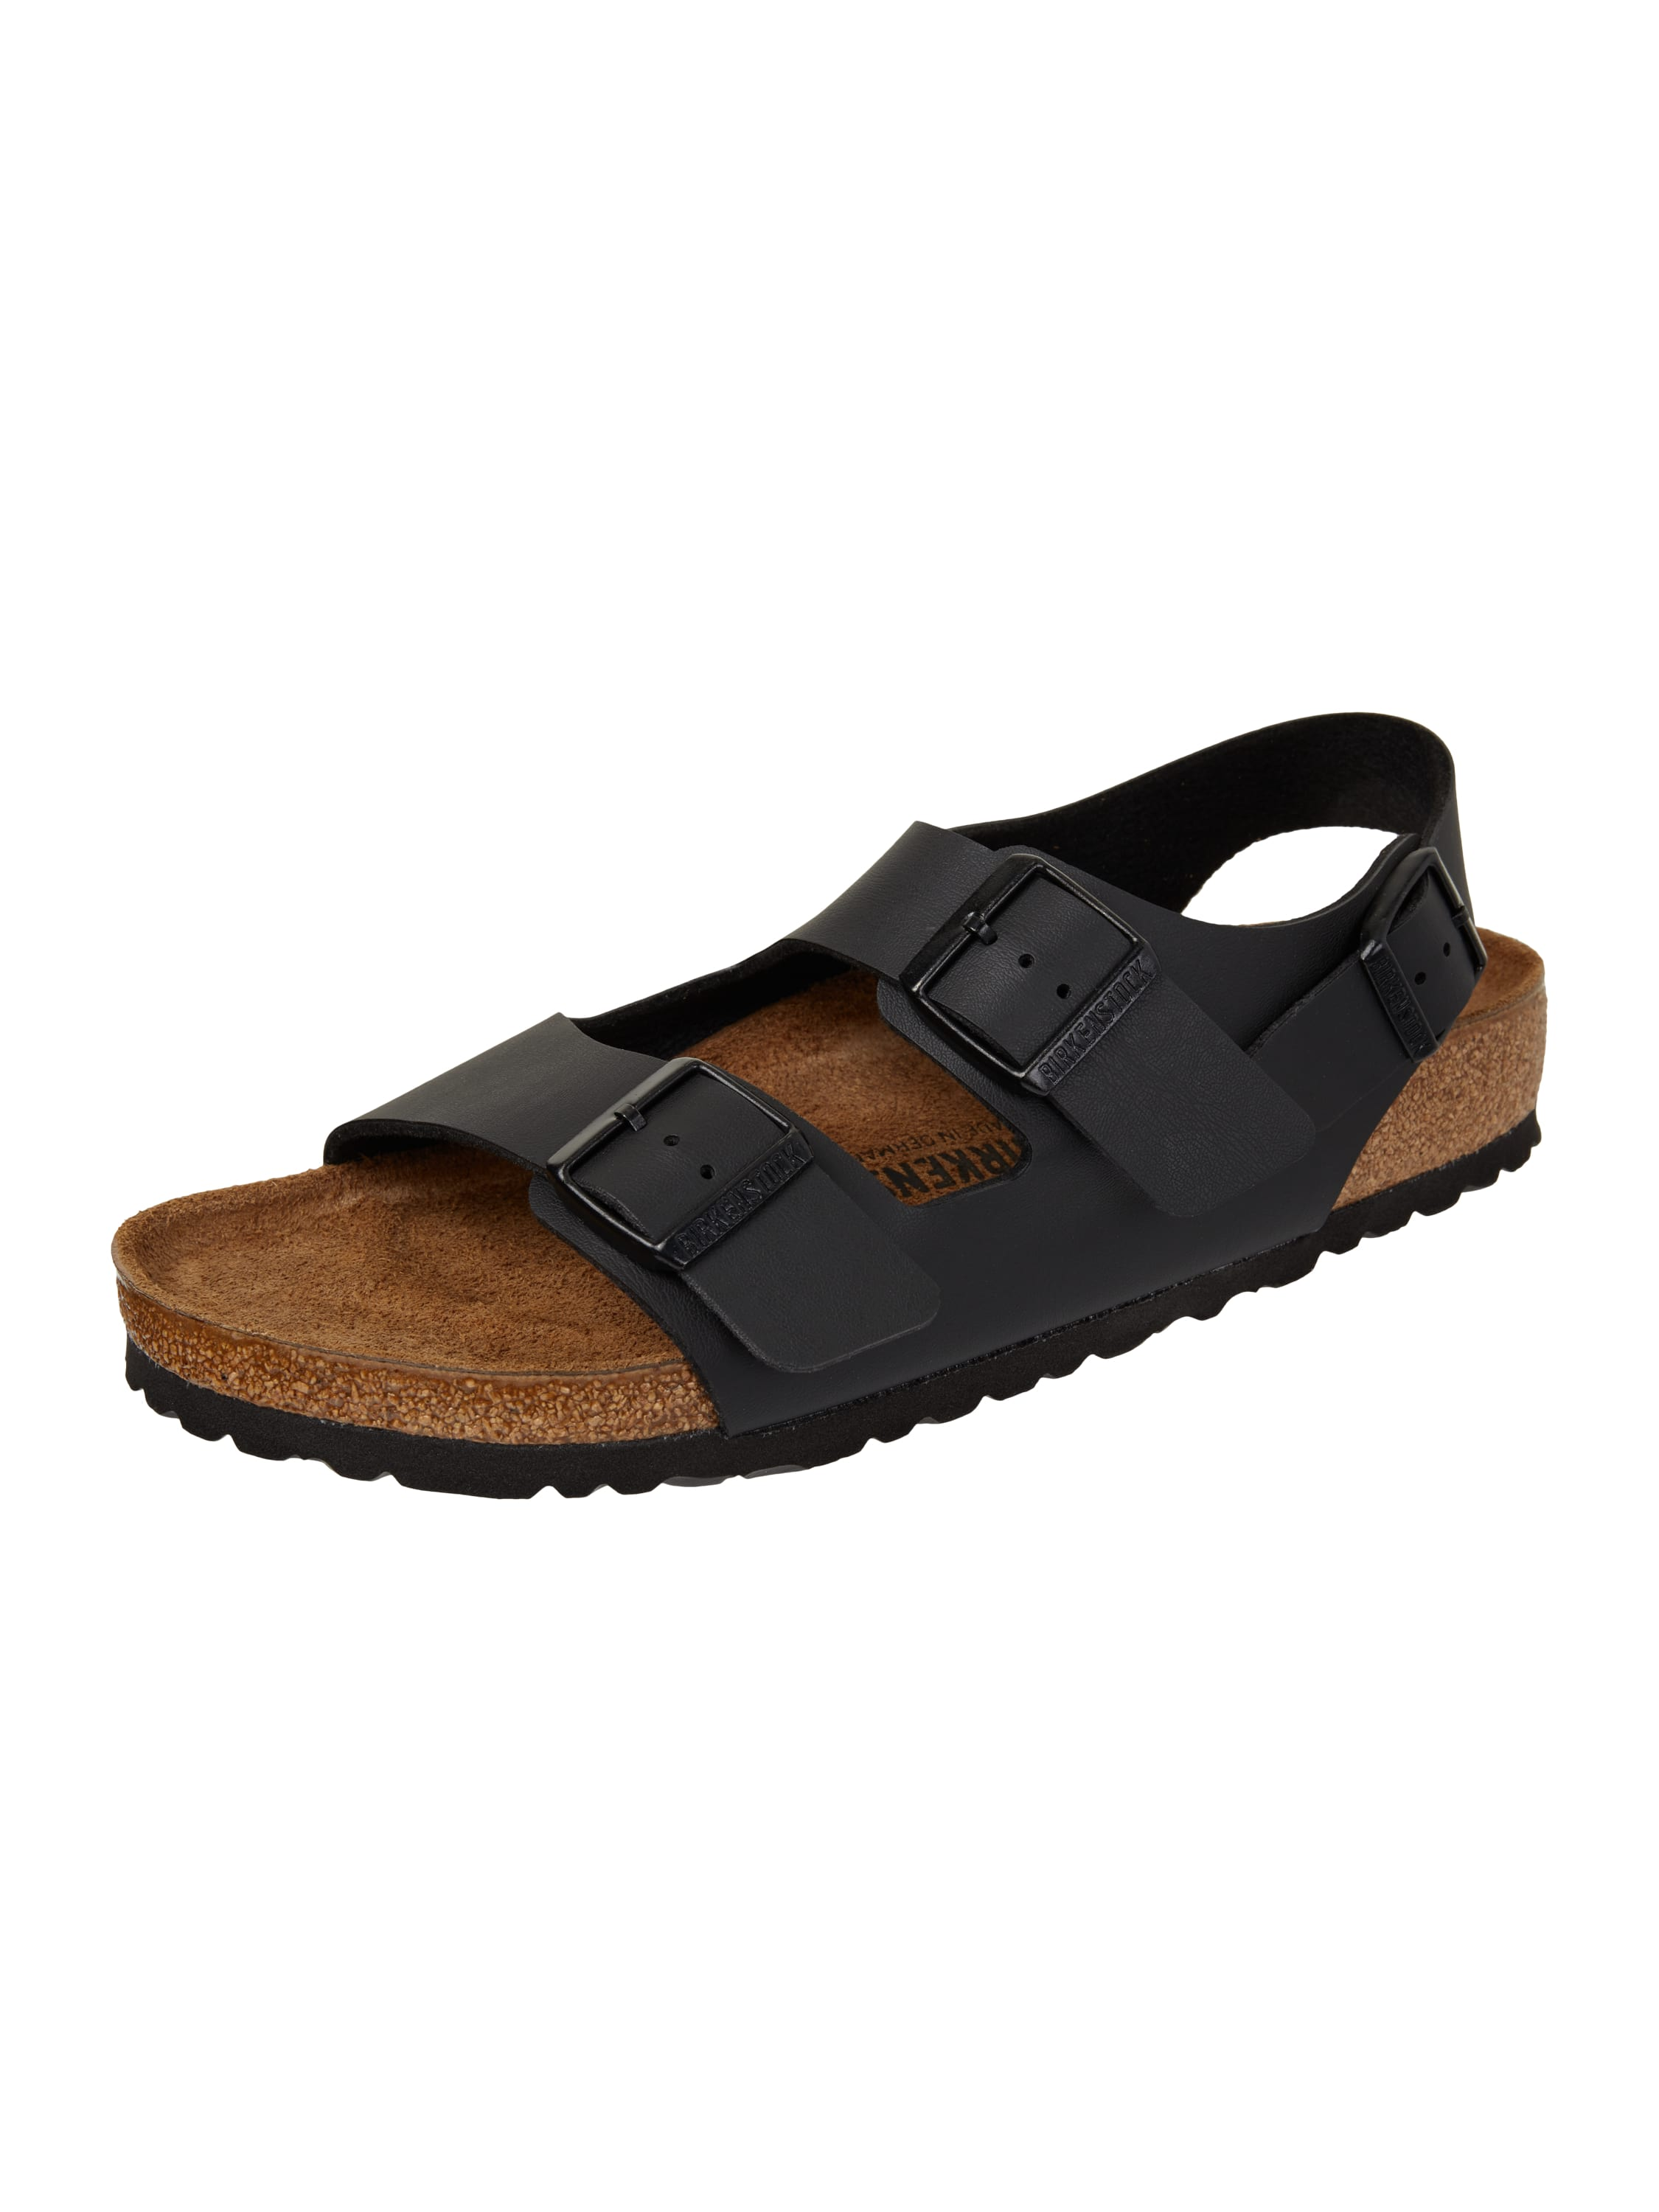 birkenstock sandalen mit ergonomischem fu bett in grau. Black Bedroom Furniture Sets. Home Design Ideas